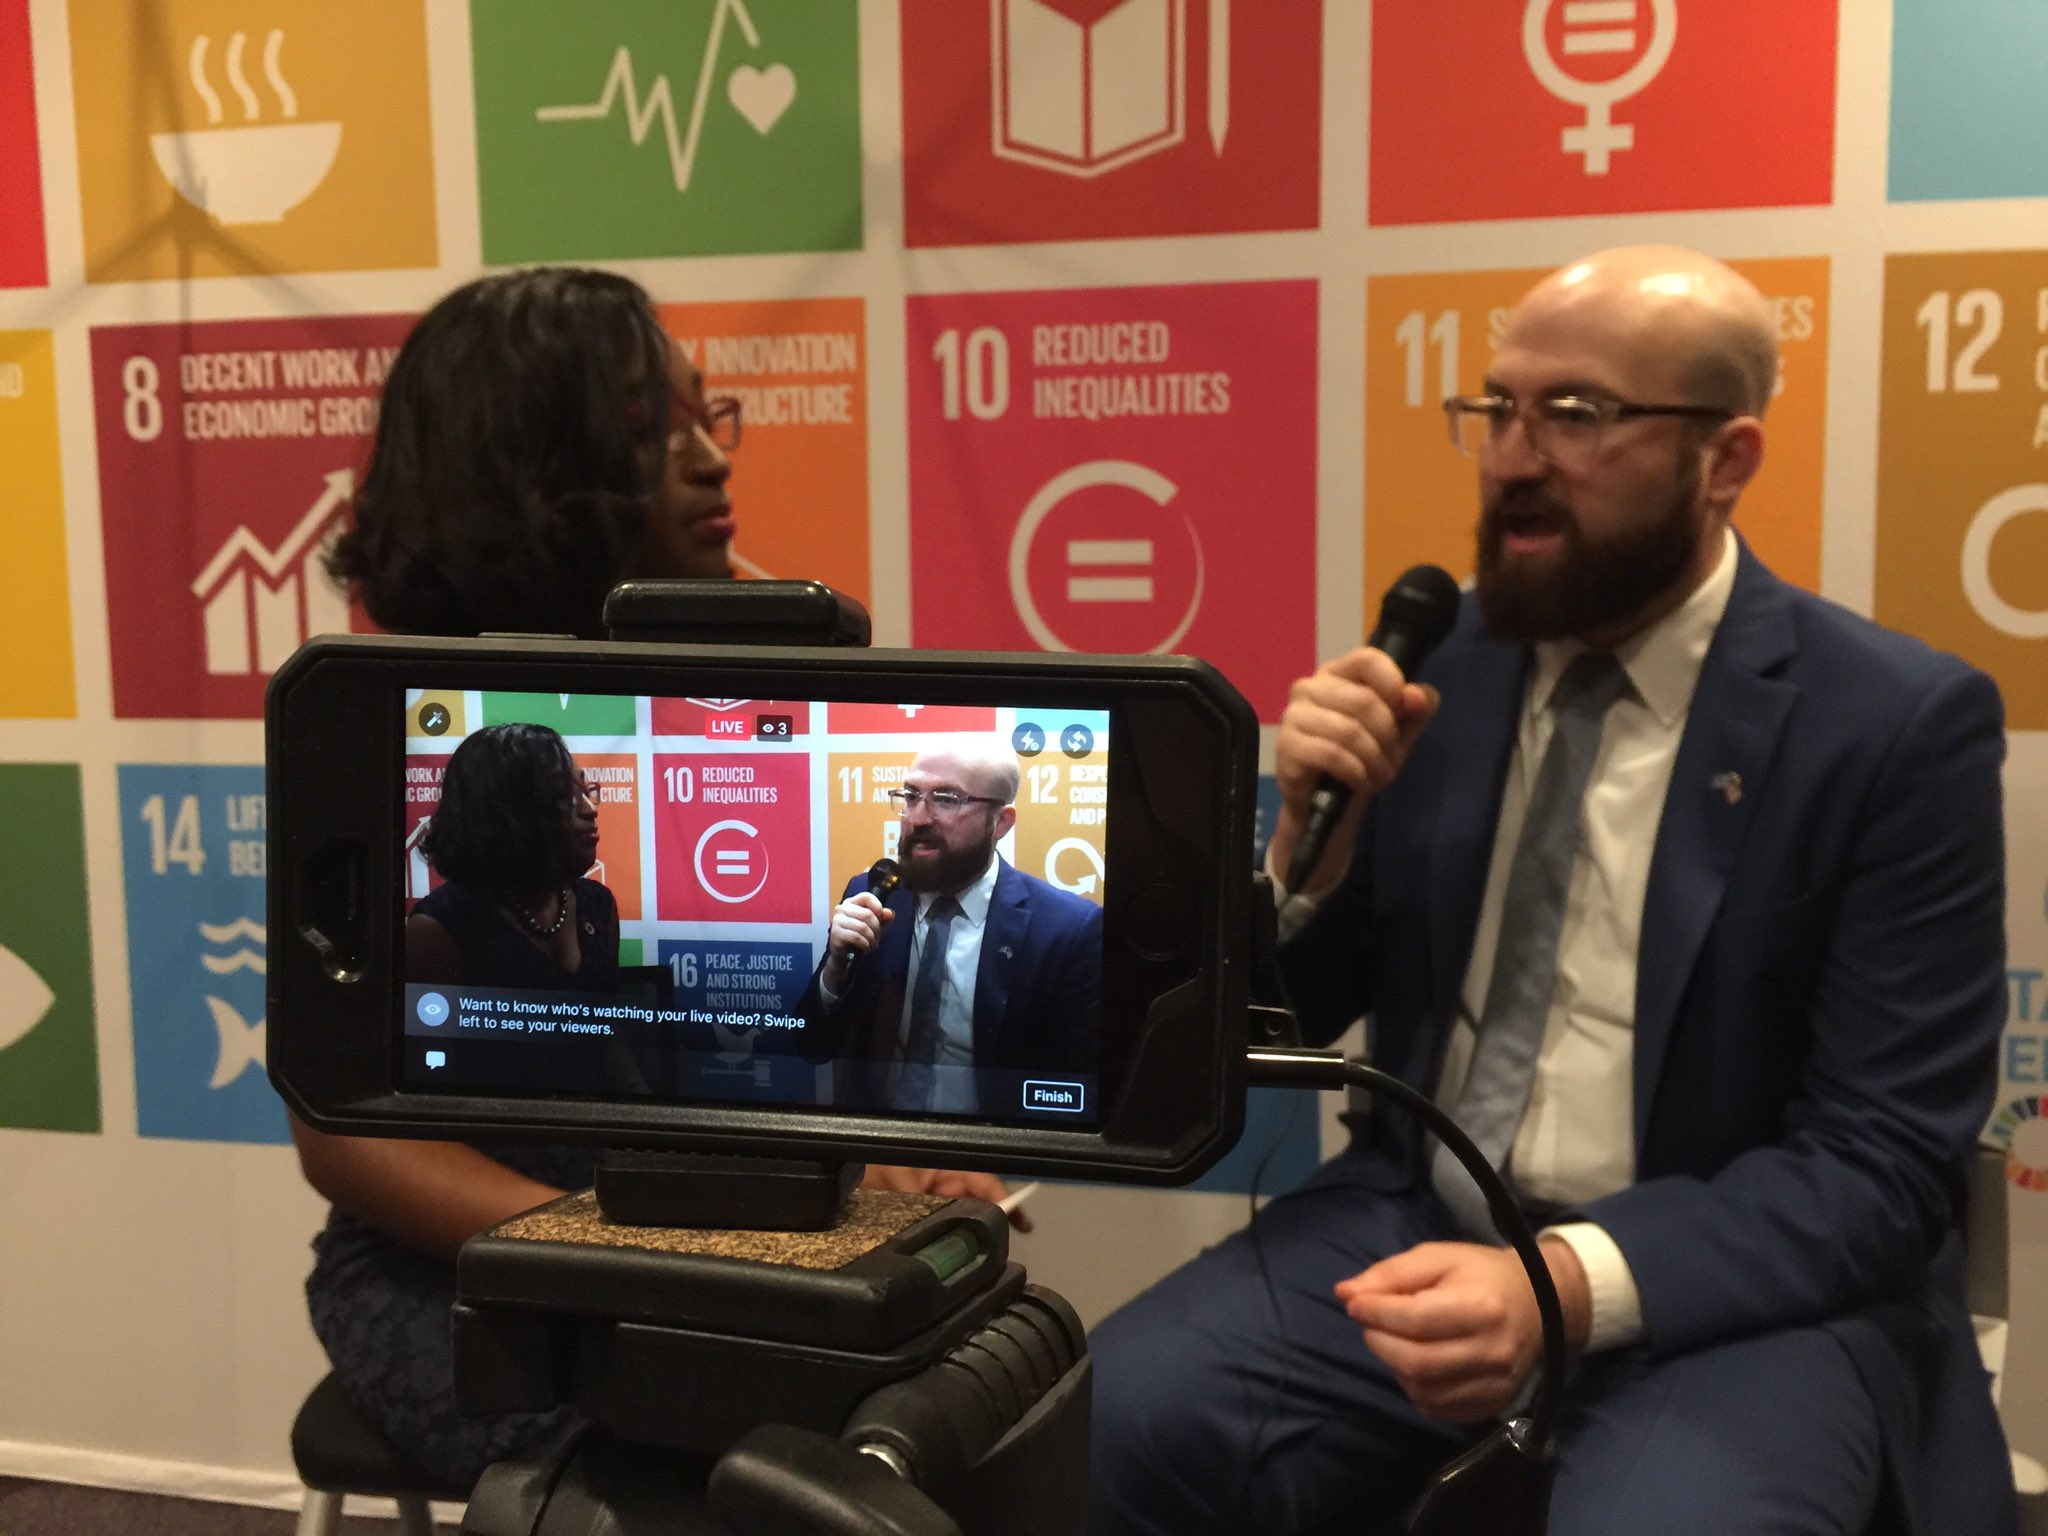 LIVE: @UNAUSA Portland Pres shares his story as an Iranian immigrant + how storytelling can create change: https://t.co/7YN0sXb1B2 #USAforUN https://t.co/QhhpoXl3hp